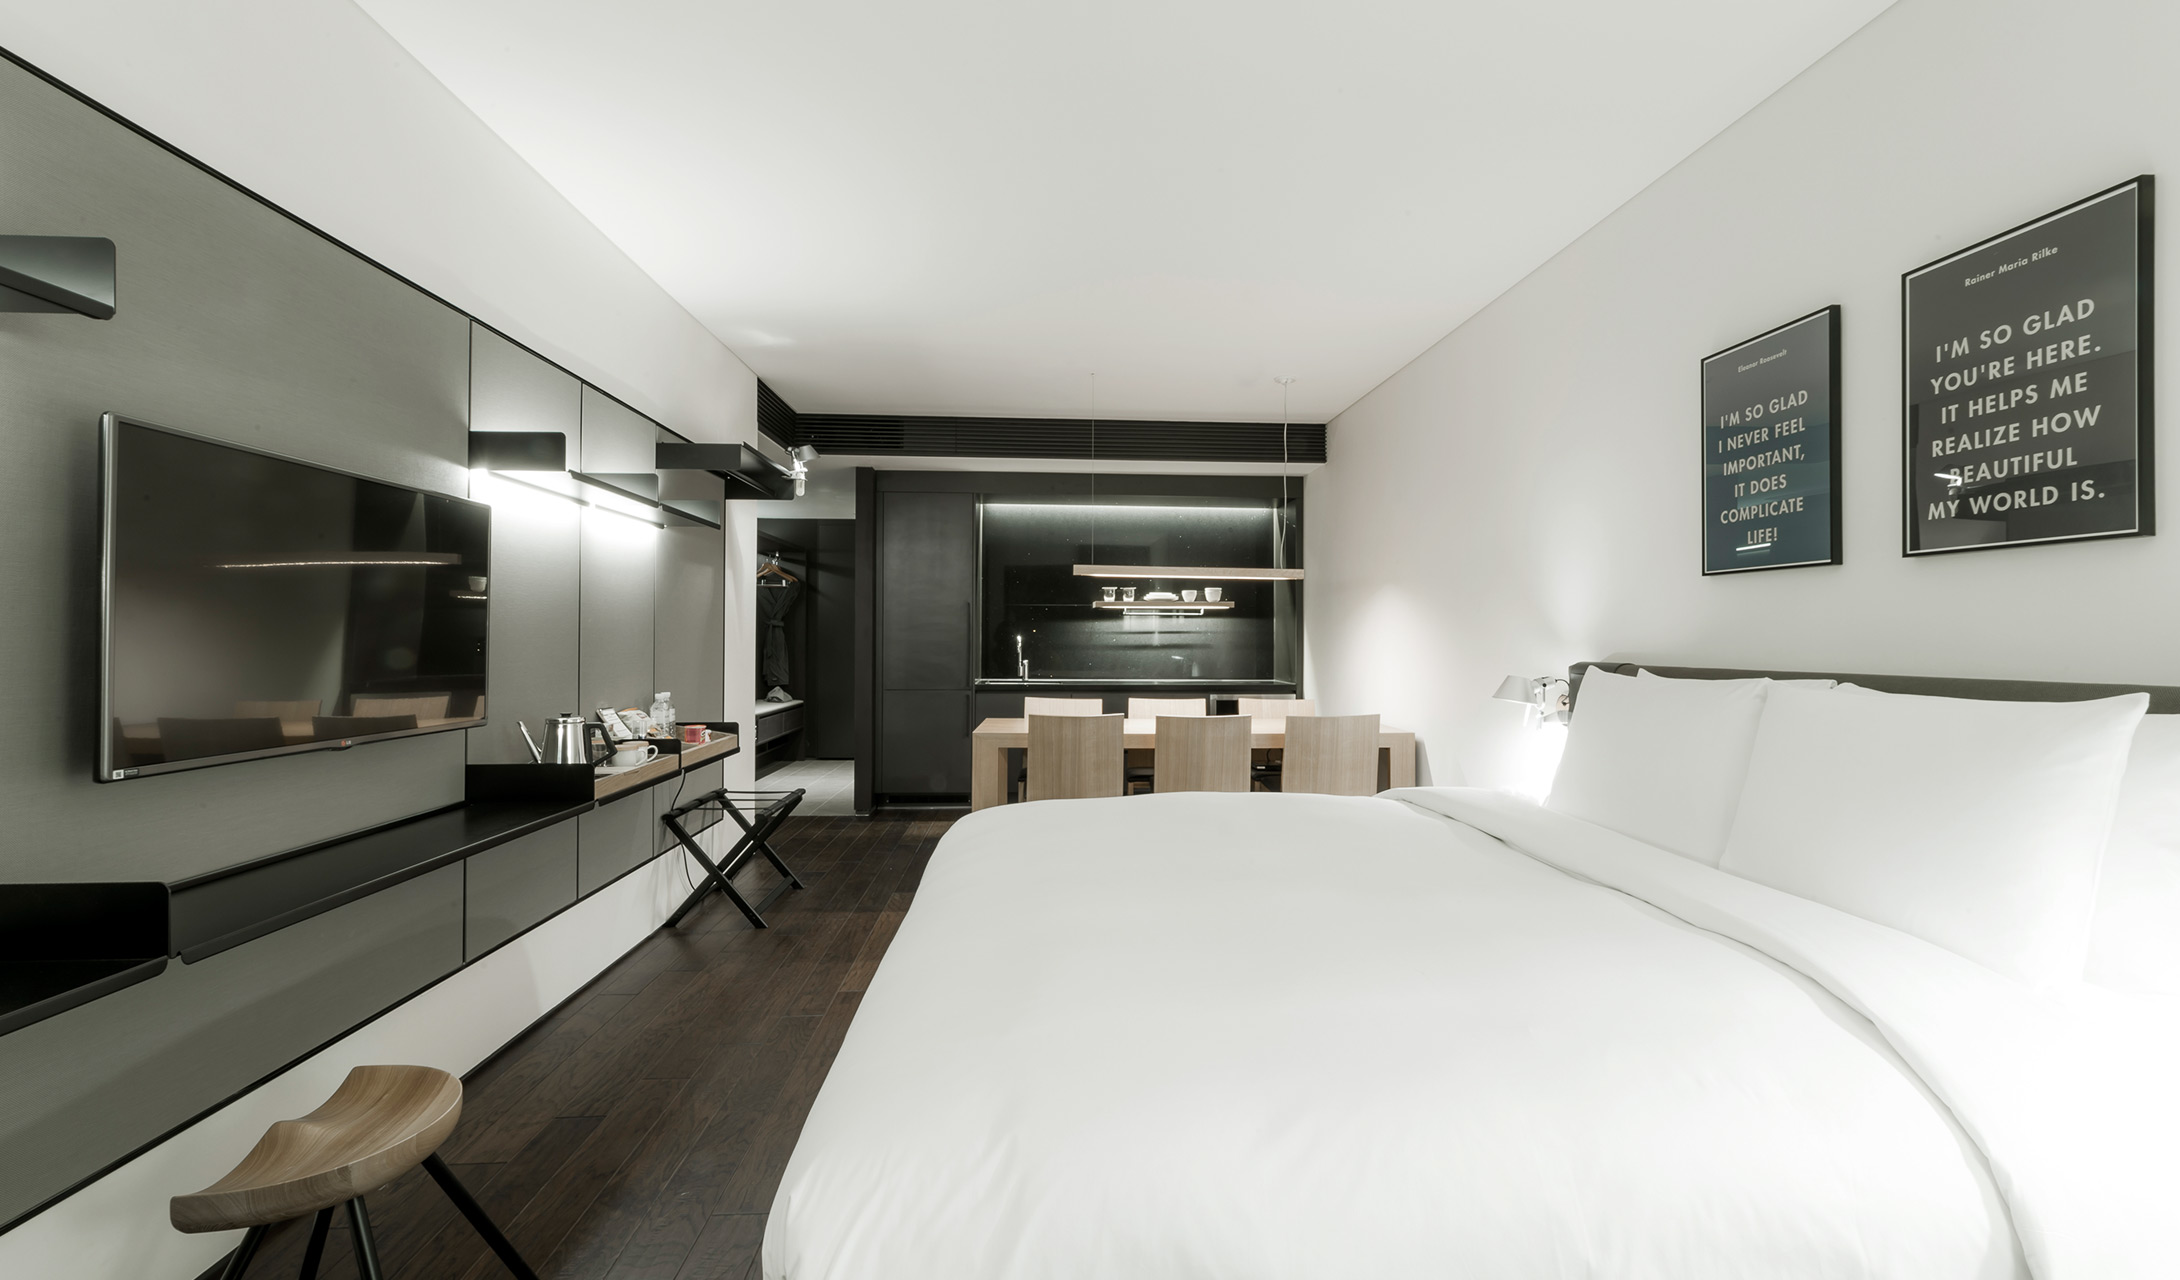 Glad hotel yeouido seoul south korea design hotels for Design hotel sauerland am kurhaus 6 8